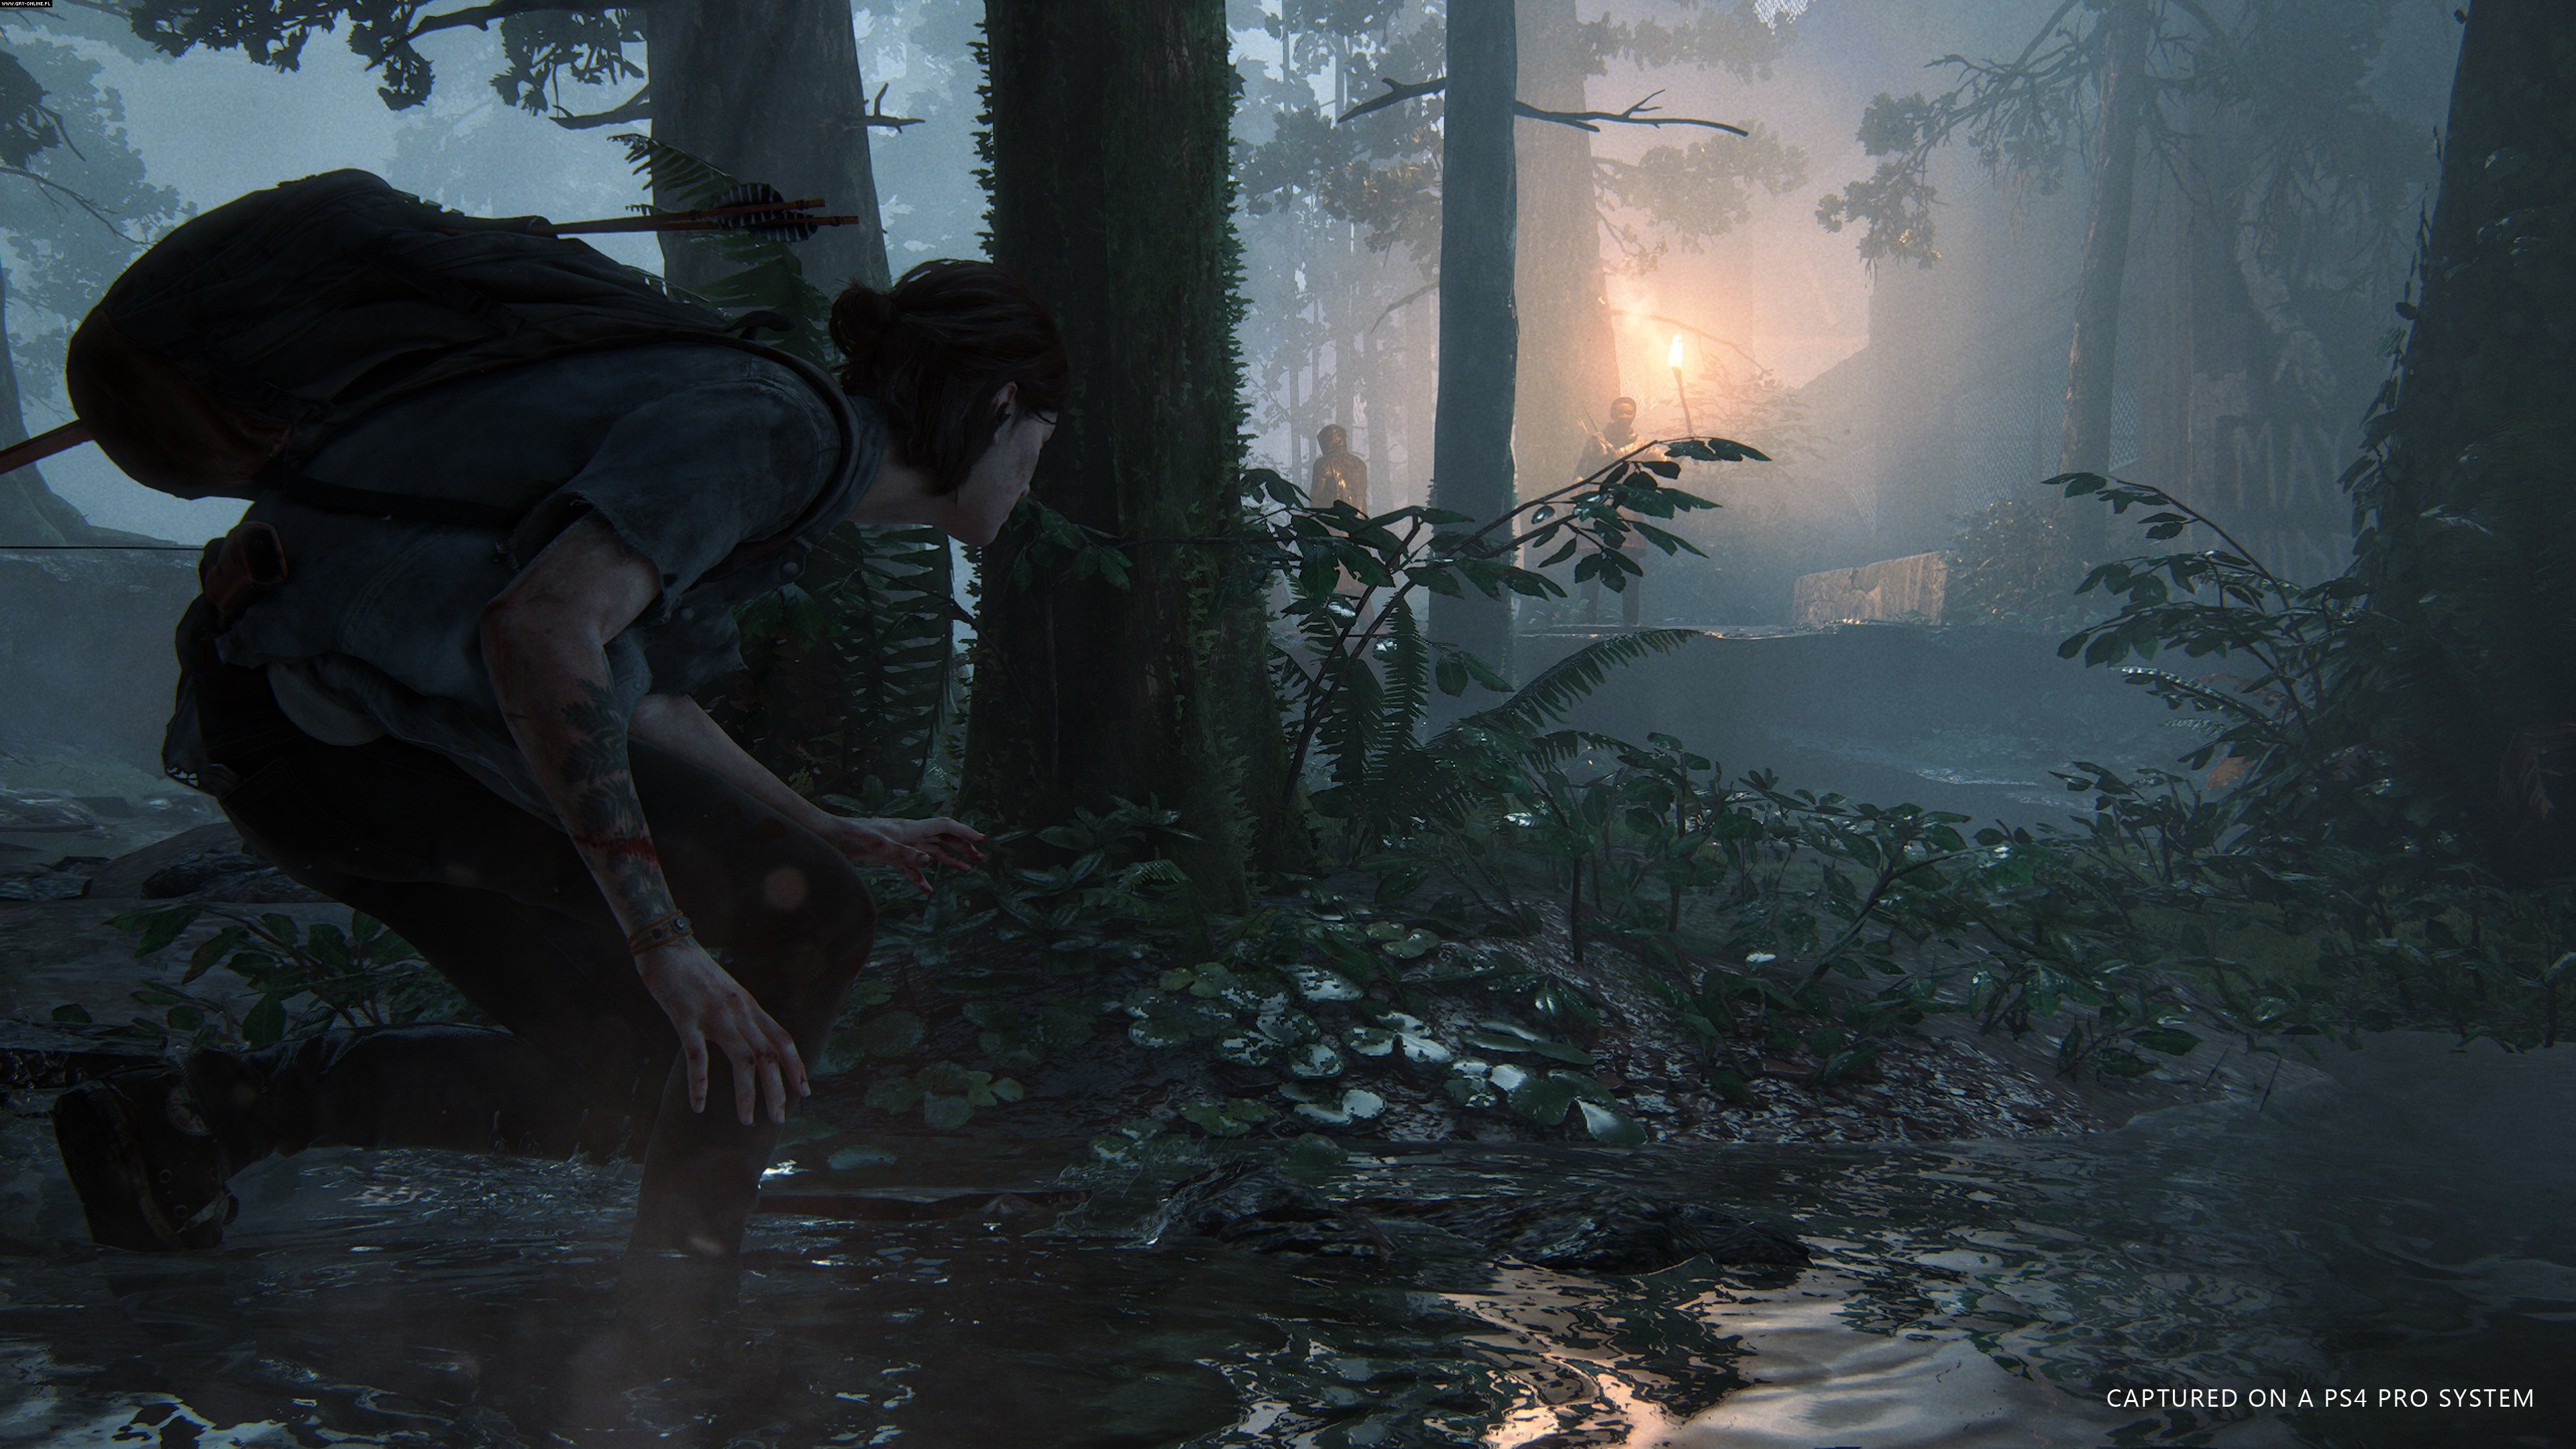 The Last of Us: Part II PS4 Gry Screen 4/30, Naughty Dog, Sony Interactive Entertainment